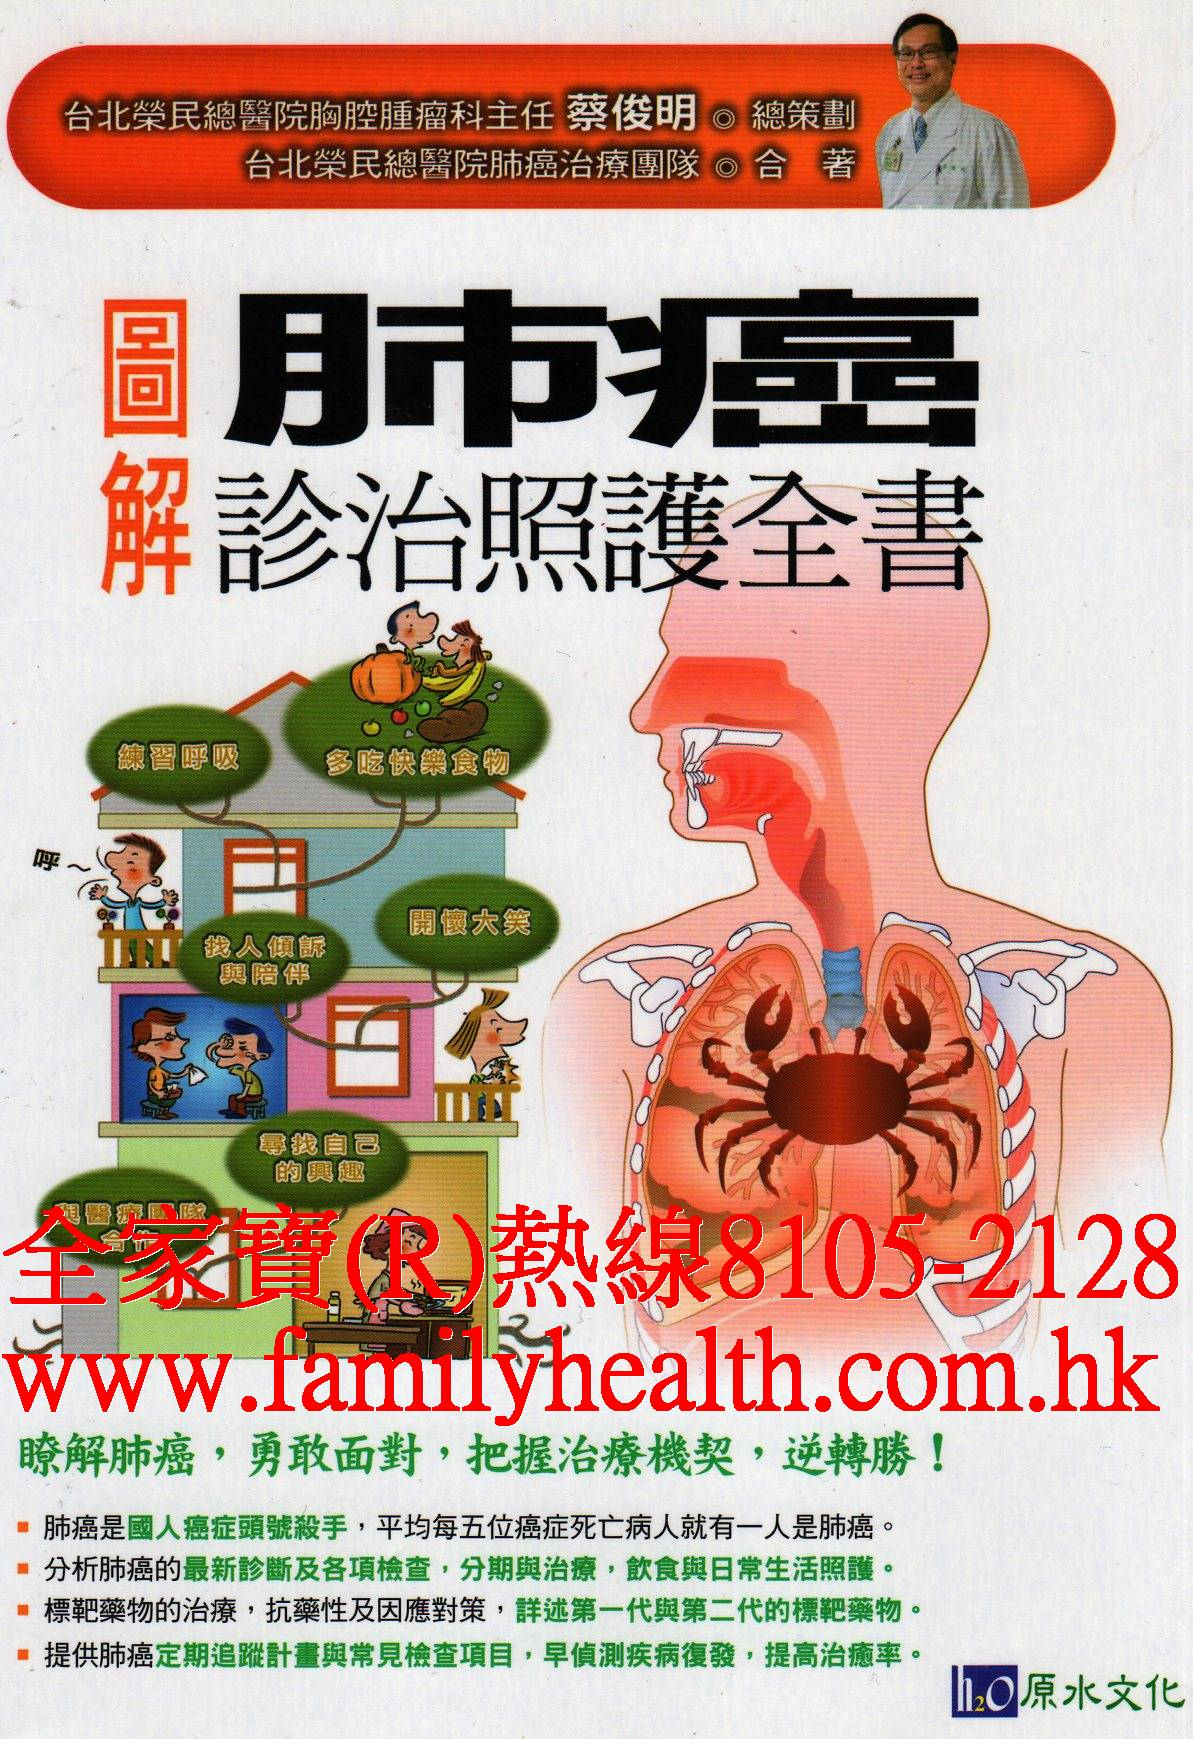 http://www.familyhealth.com.hk/files/full/1155_0.jpg